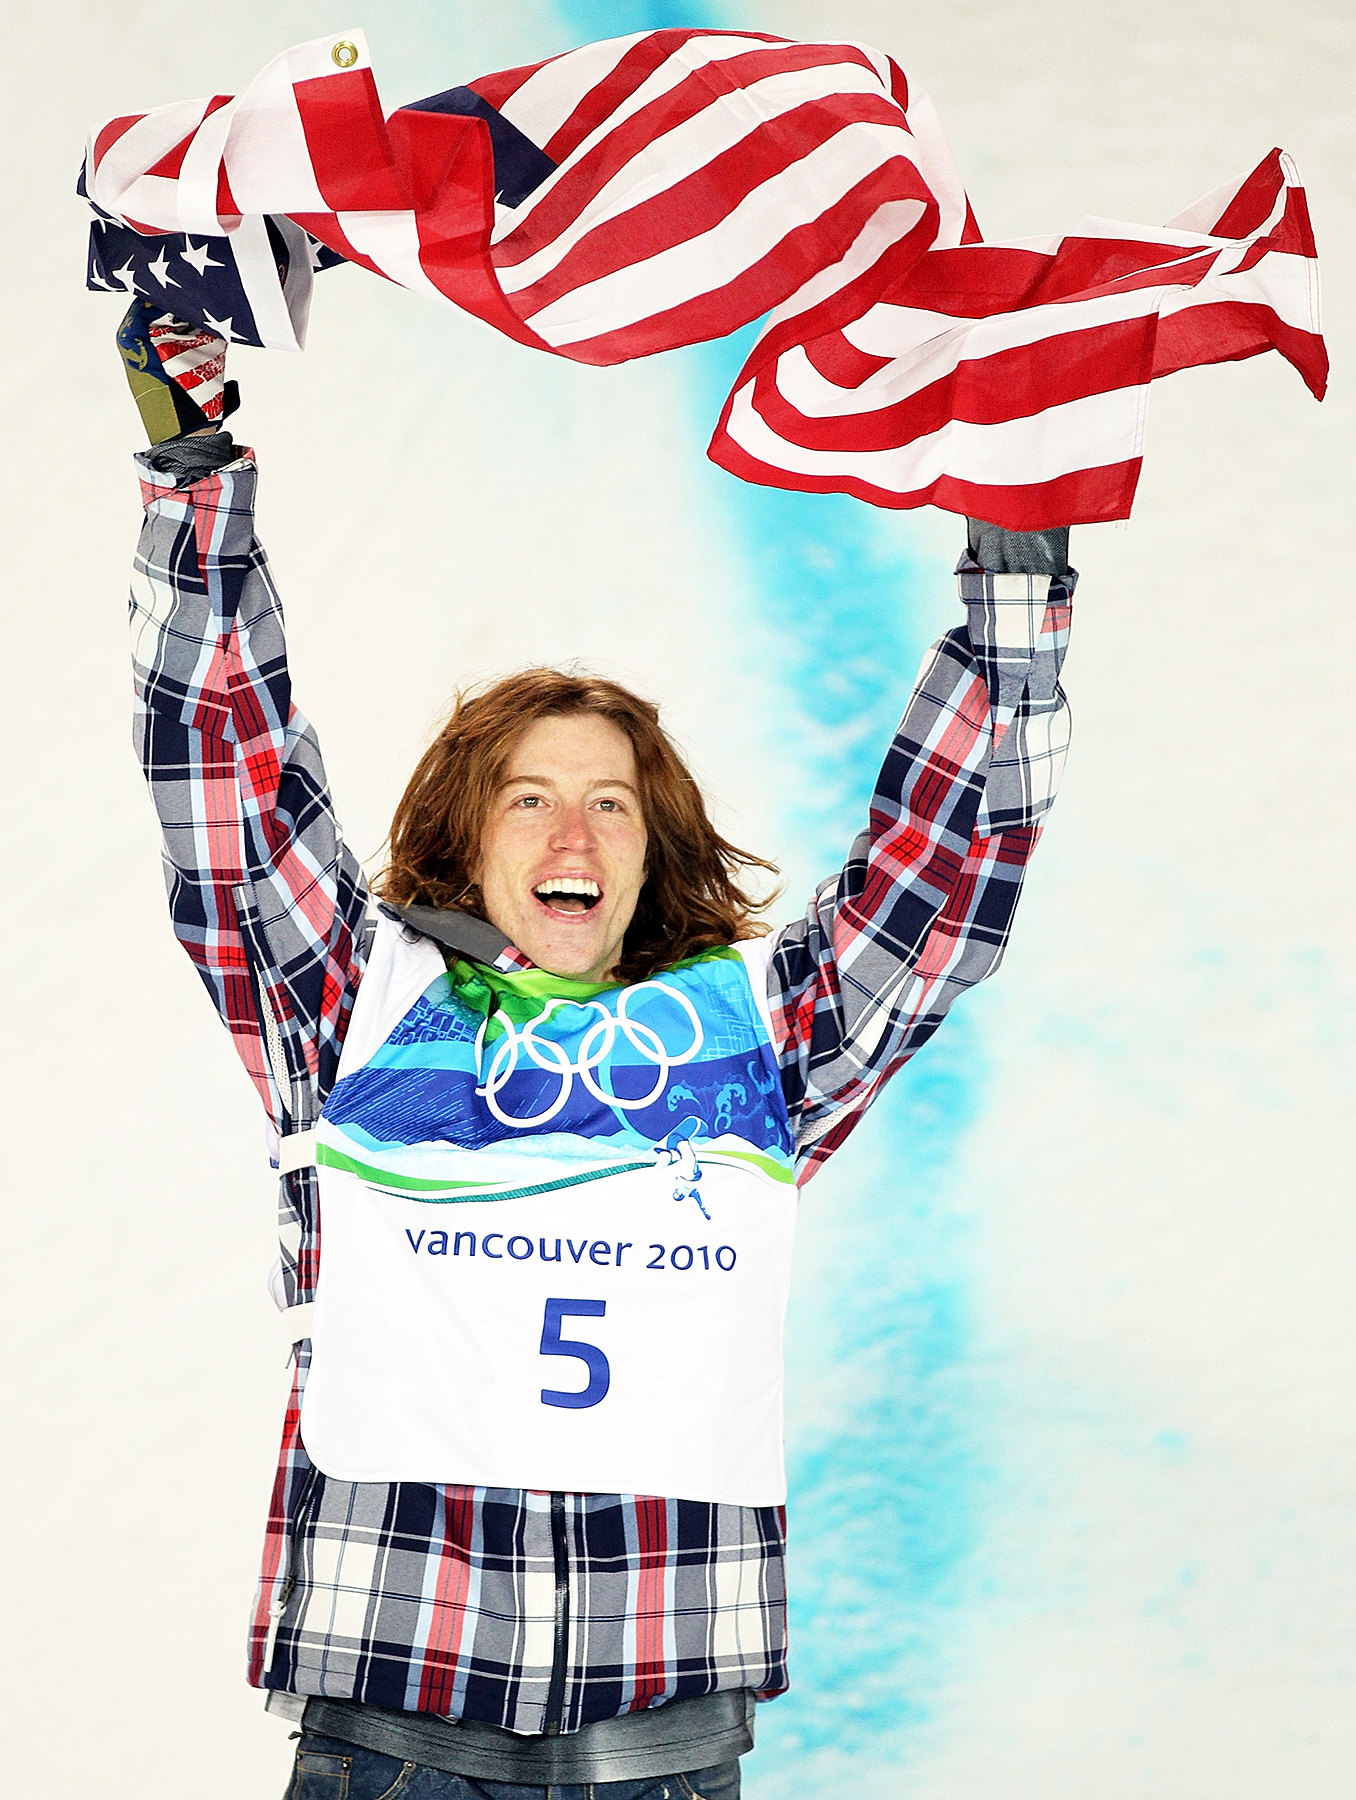 Shaun White Snowboard Men's Halfpipe final Olympics gold medal